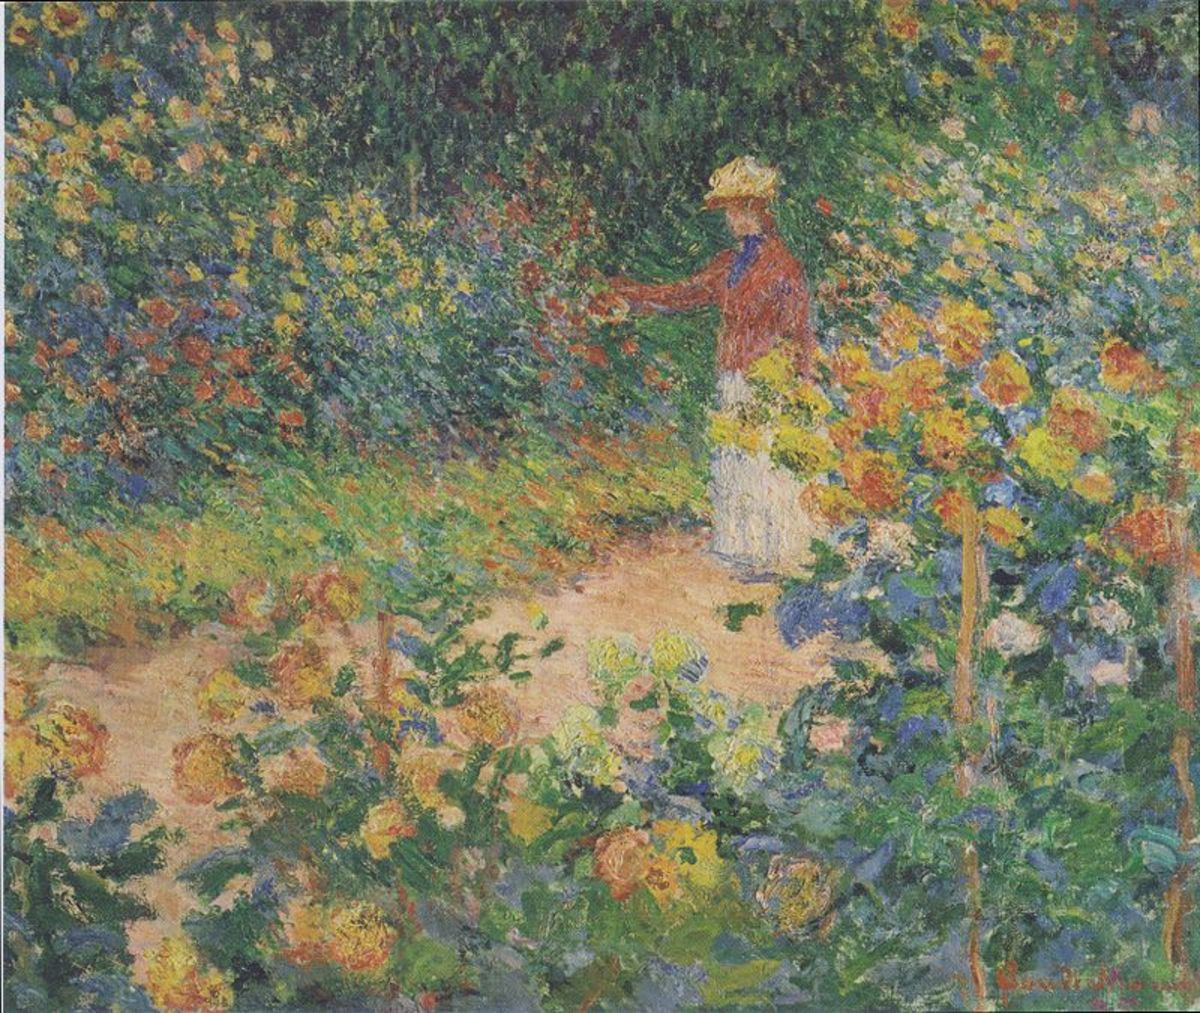 In the Garden, Claude Monet 1895